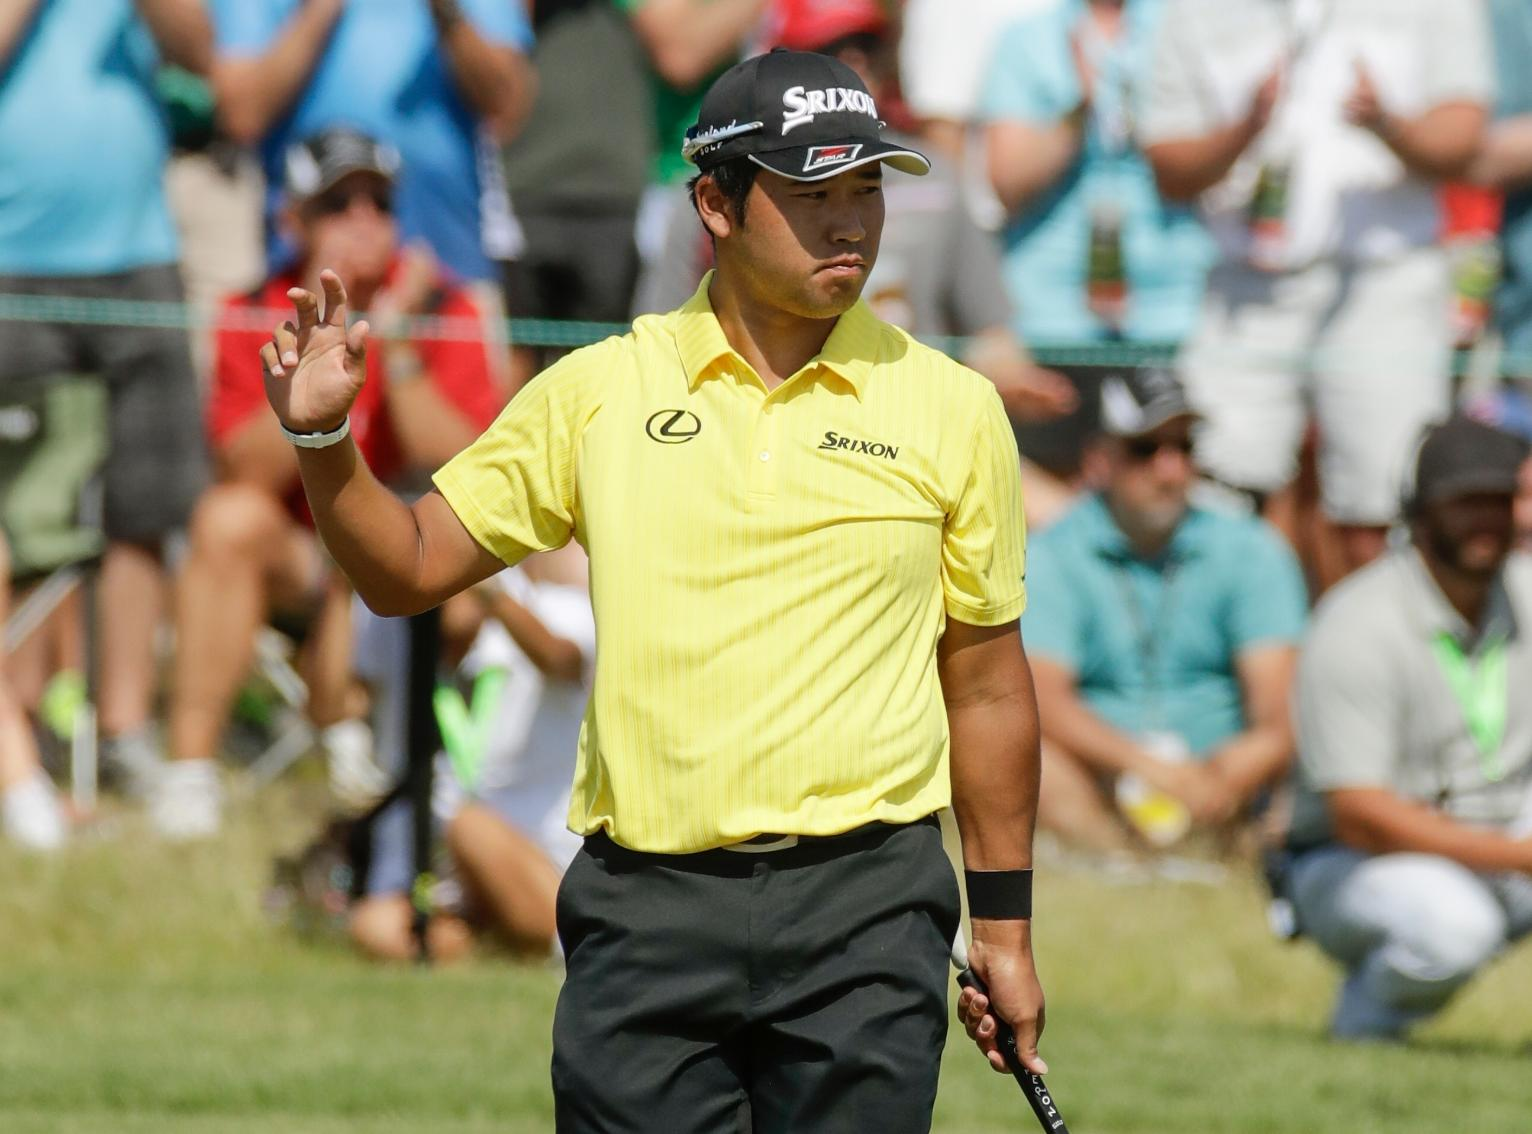 matsuyama senior personals Dating back to last october, matsuyama now has three worldwide wins,  he finished 24th at the senior british open and thought he'd be home in australia this week.